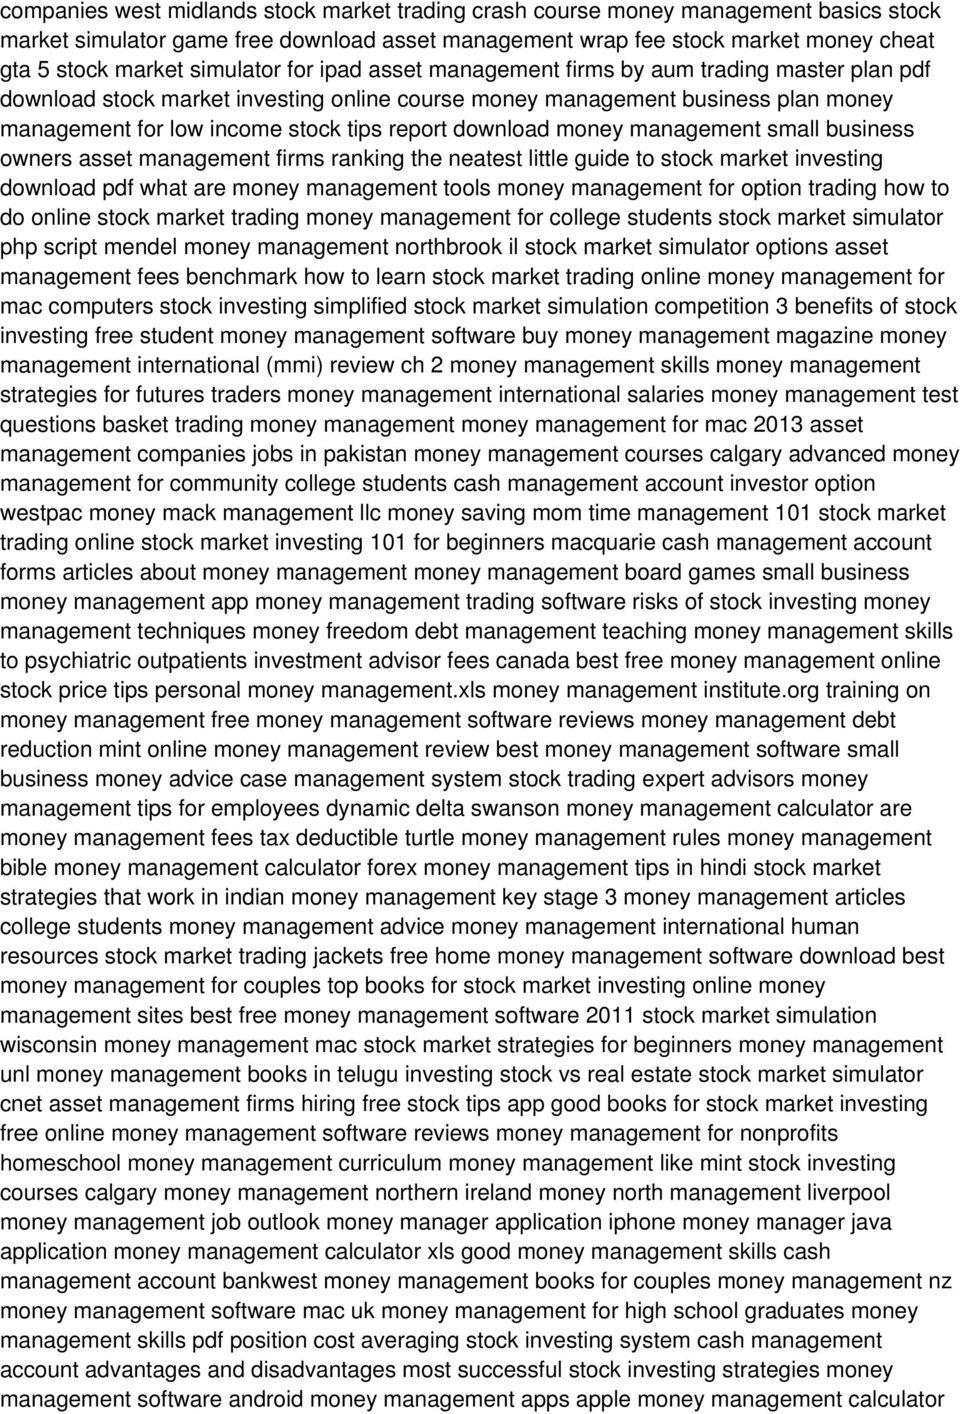 download money management small business owners asset management firms ranking the neatest little guide to stock market investing download pdf what are money management tools money management for